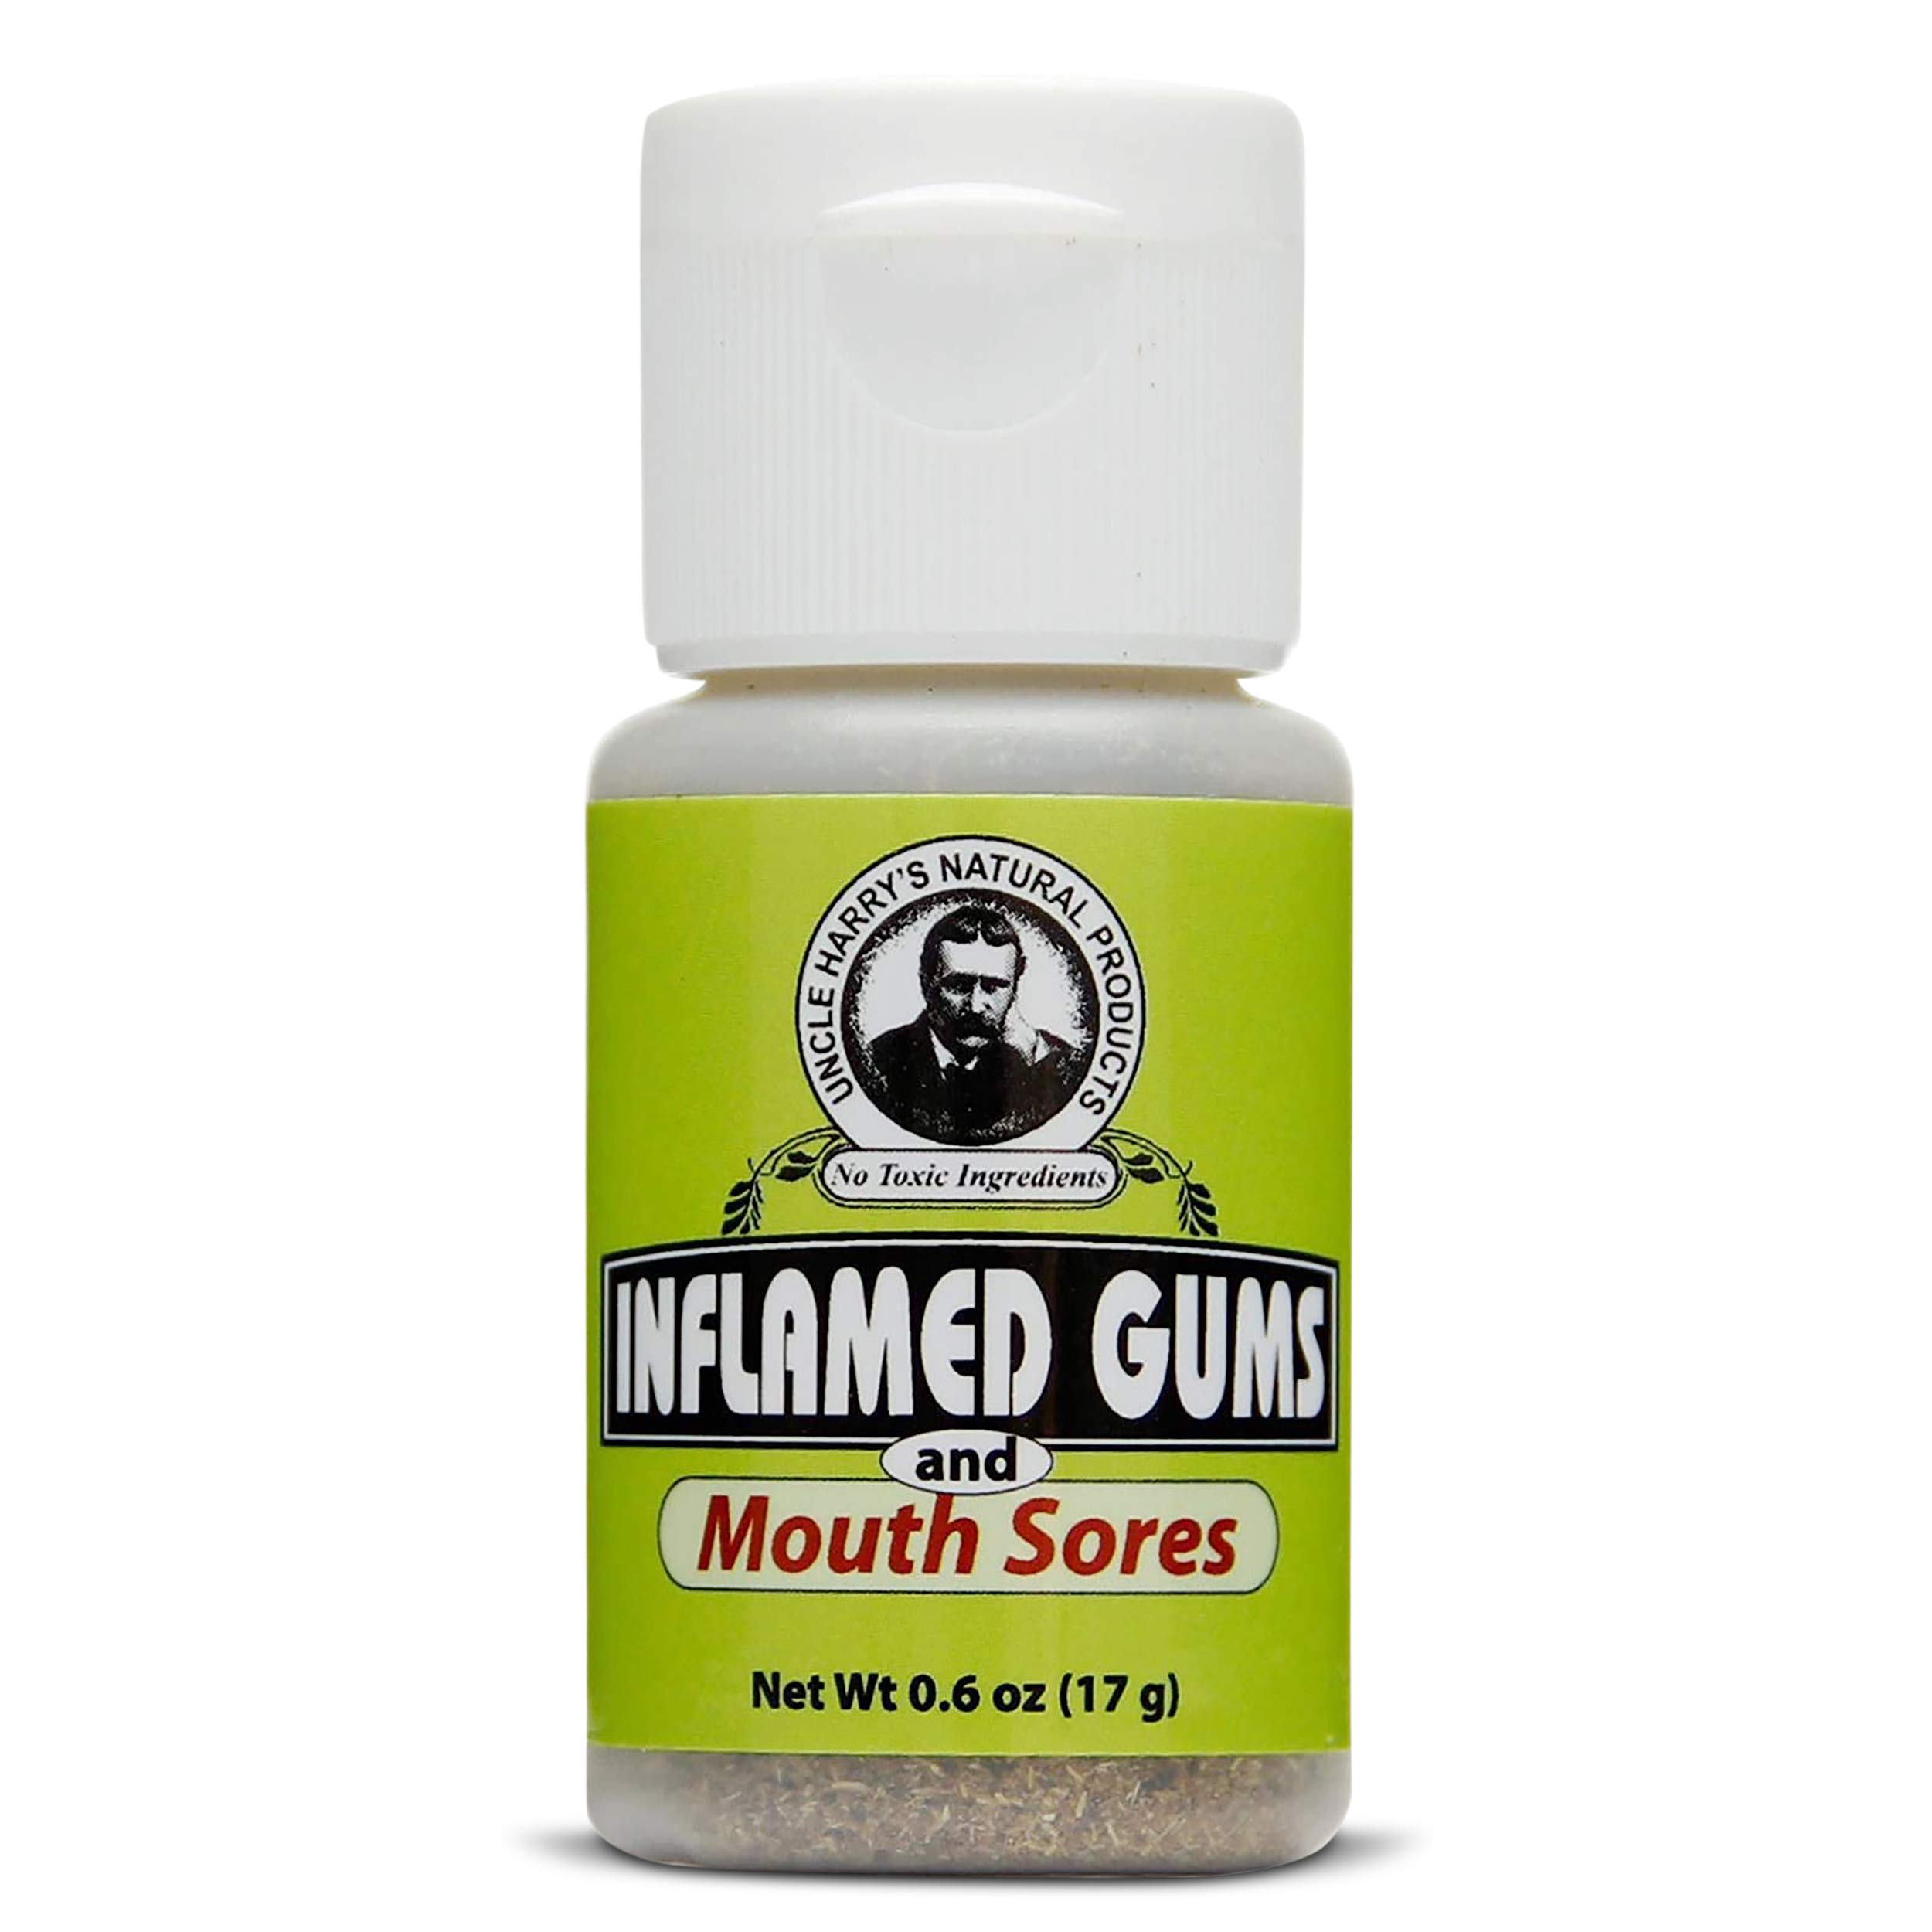 Uncle Harry's Inflamed Gums & Mouth Sores Tooth Powder | Organic Powder Toothpaste for Gum Health & Sensitive Teeth | Tooth Pain & Mouth Sore Rinse Made with Pure Essential Oil (0.6 oz)